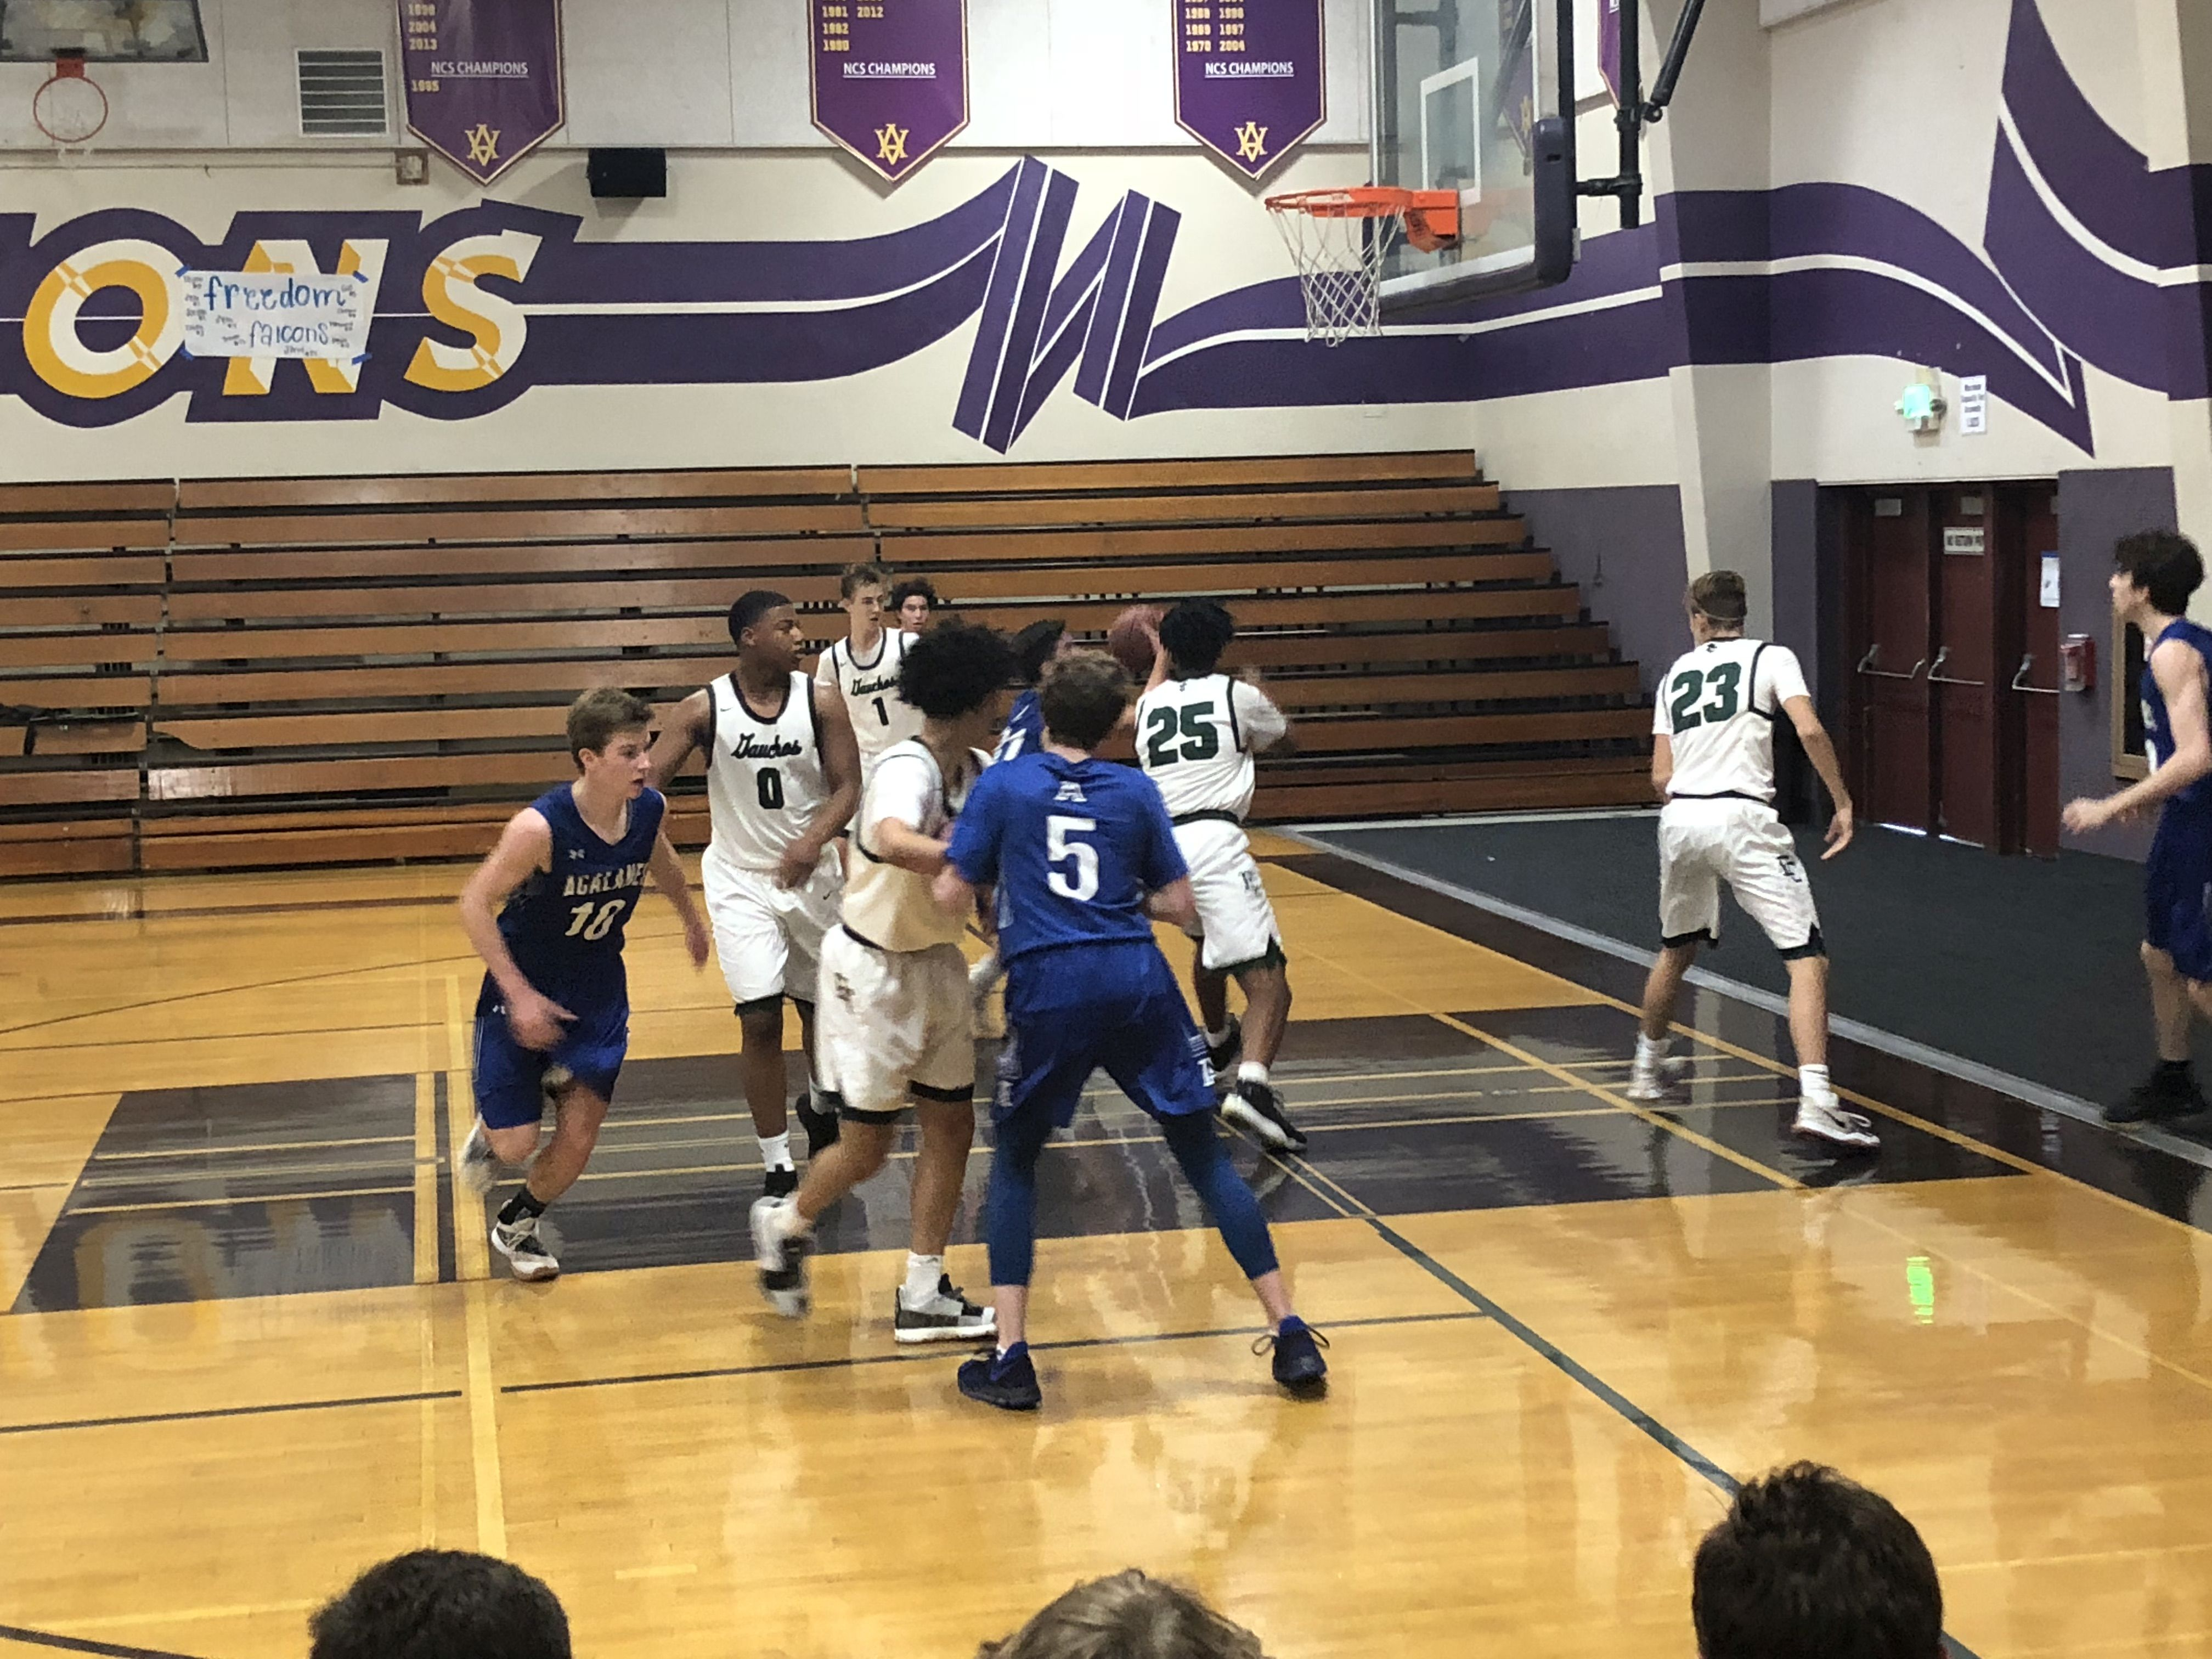 Varsity Boy's Basketball defeats EL Cerrito to win consolation at Amador Valley Tourney